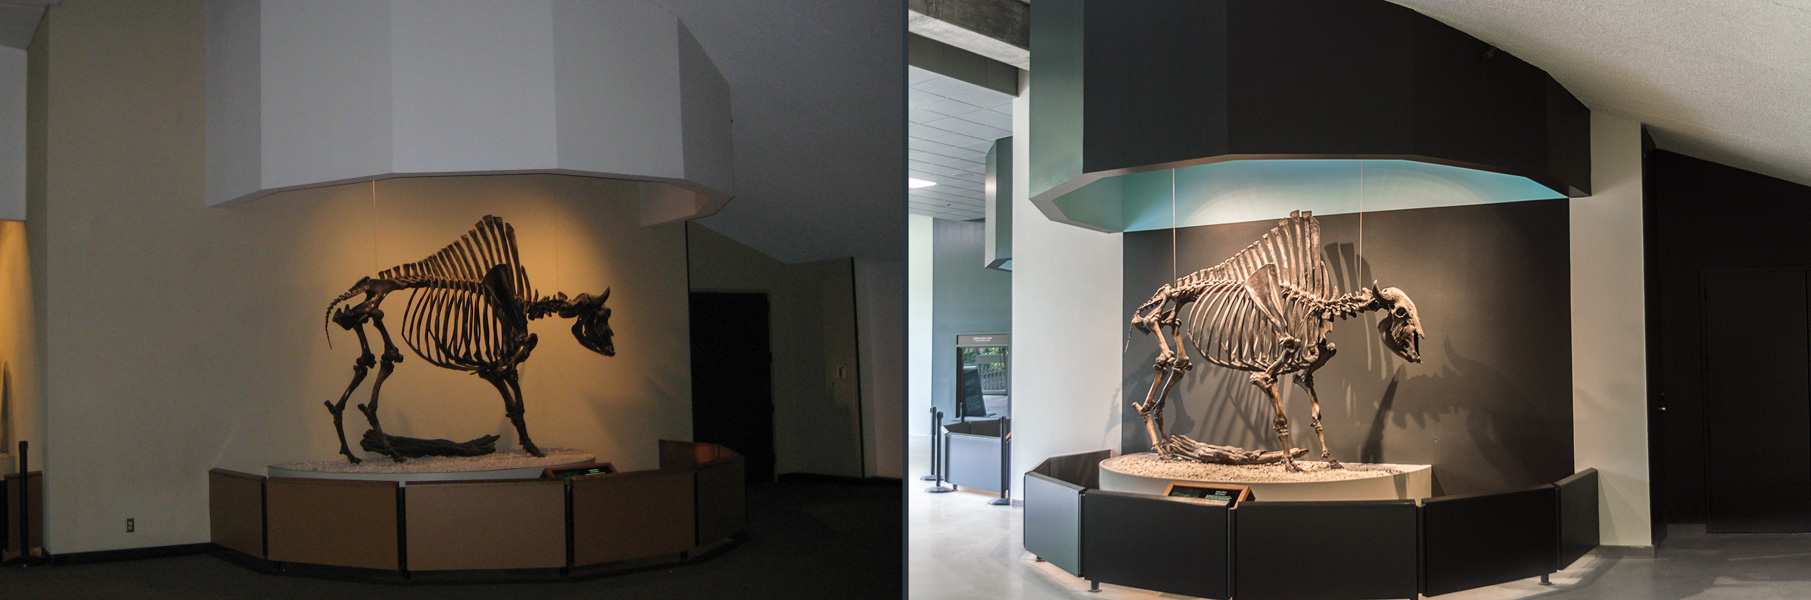 Bison wall — Before | after renovation